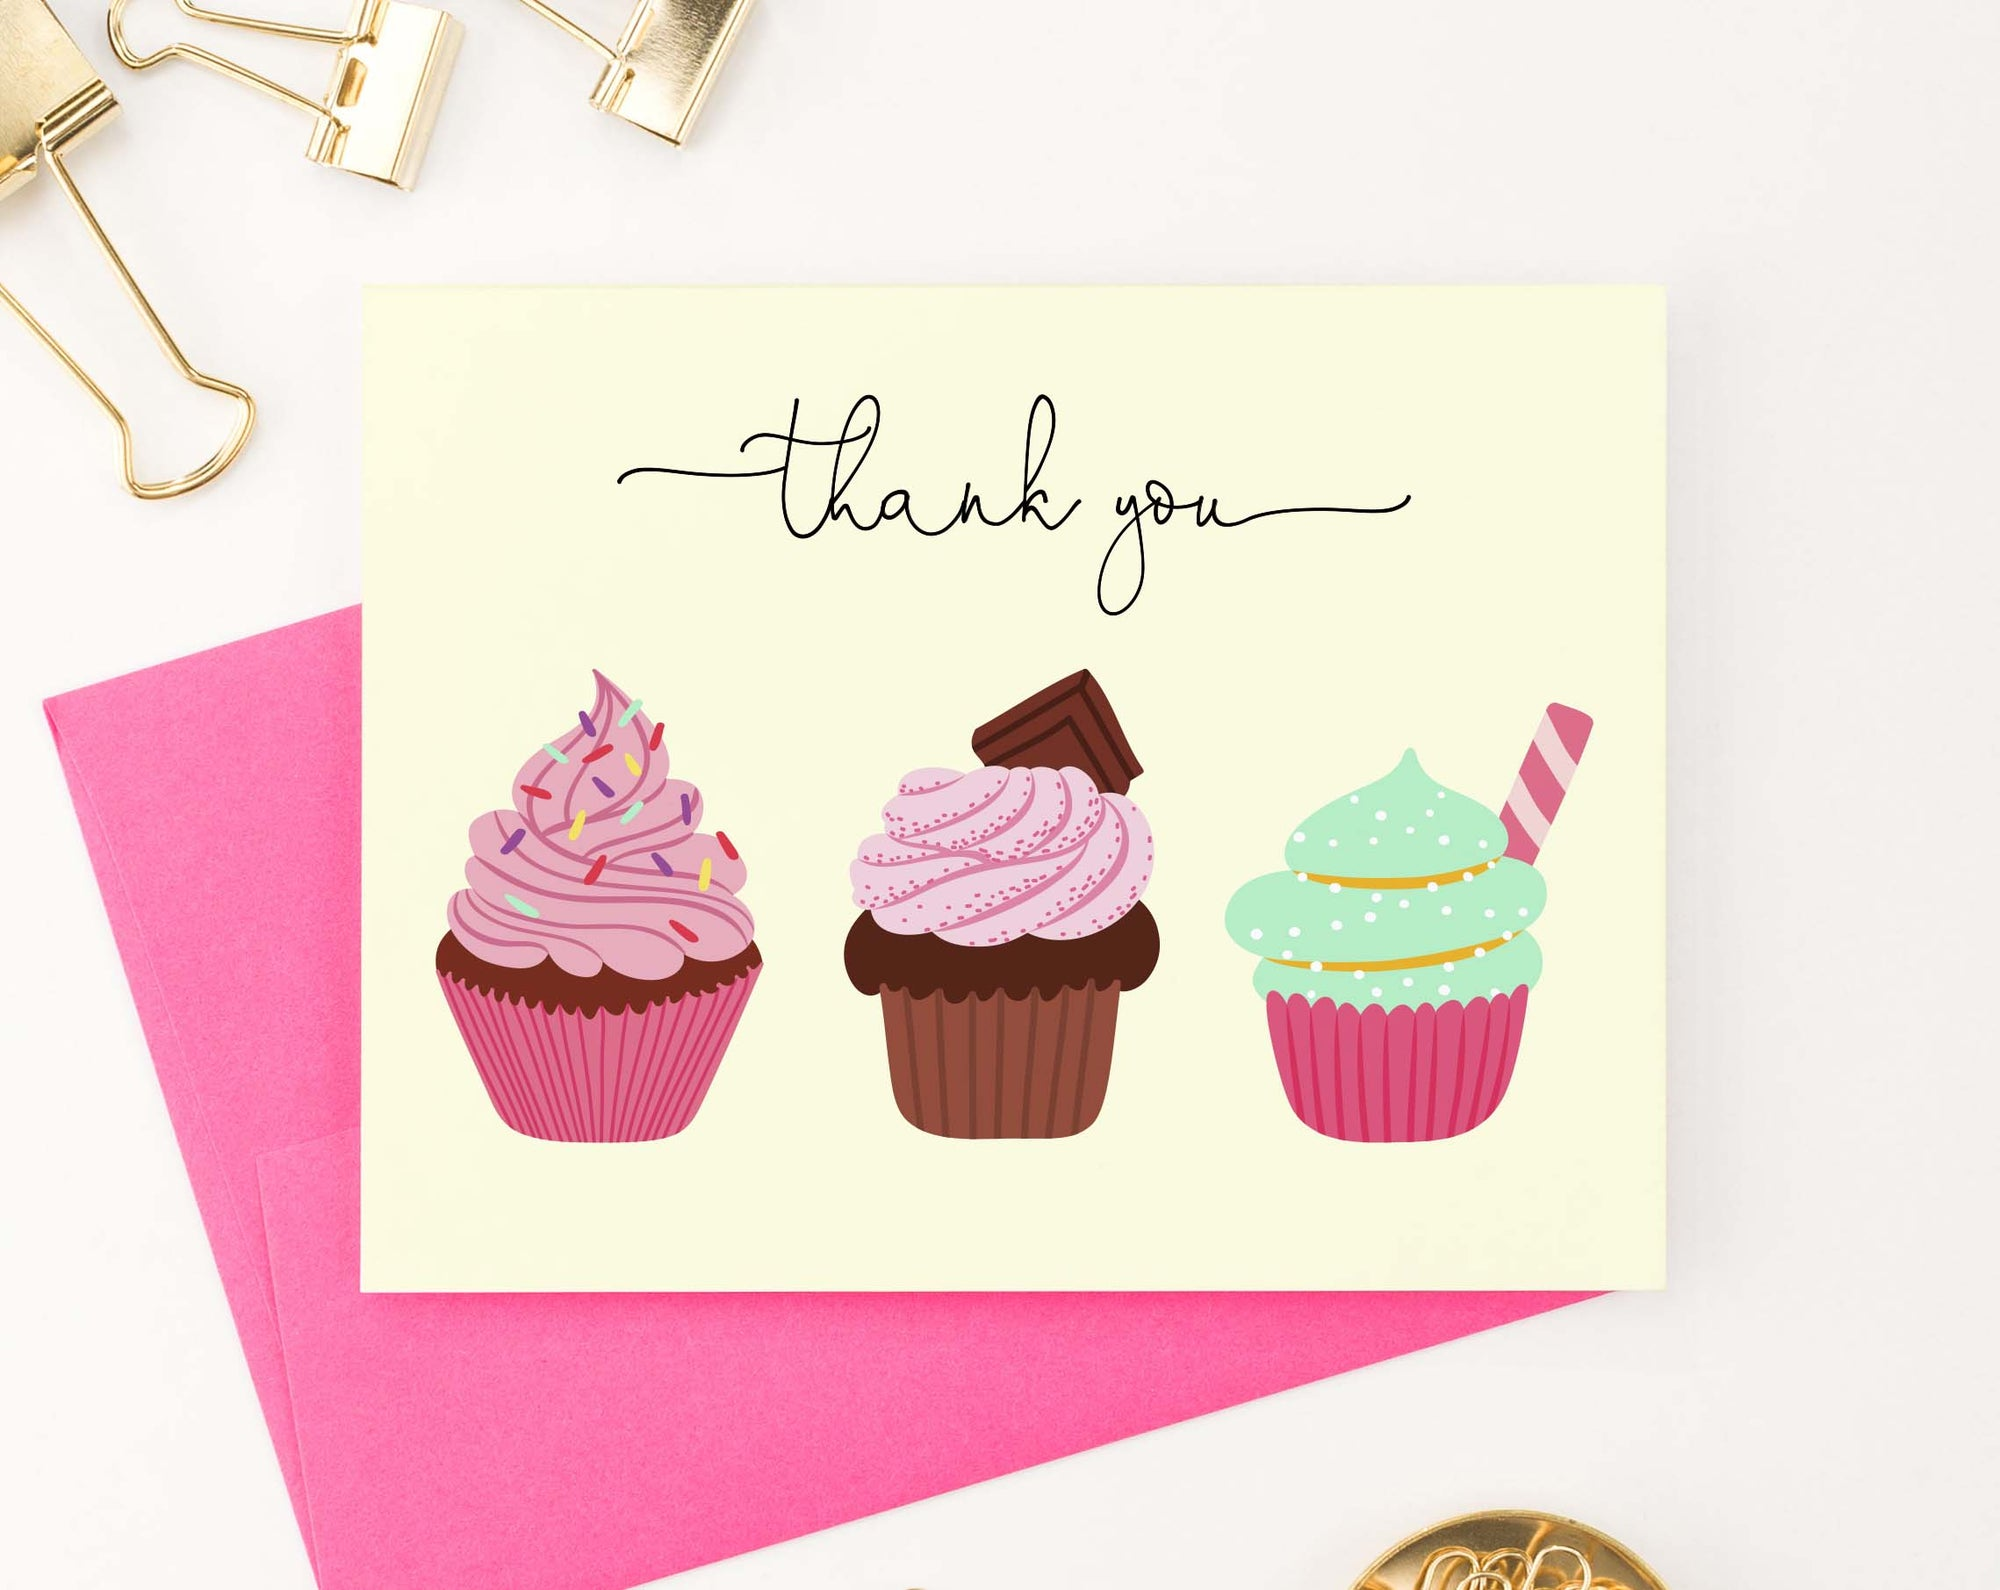 TY026 cupcake folded thank you cards for birthday sweet elegant cute